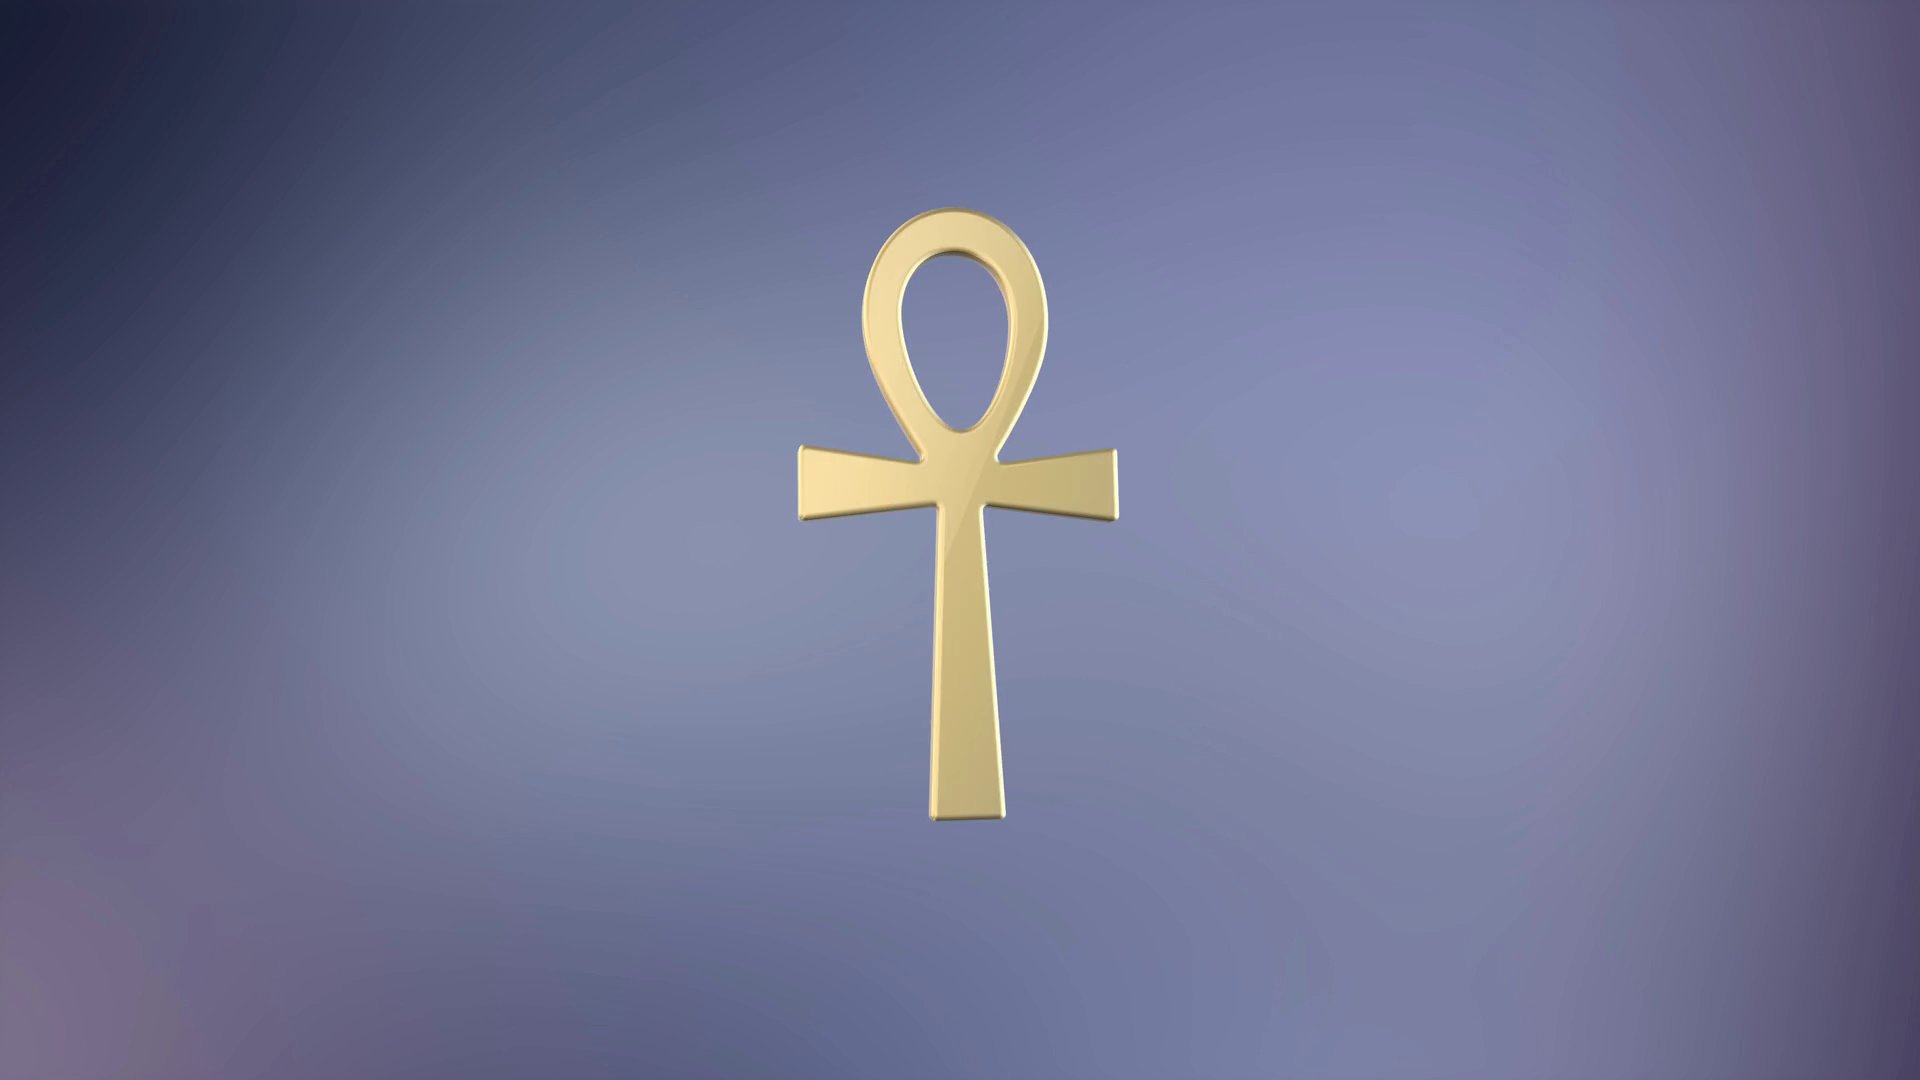 Ankh Wallpapers HD